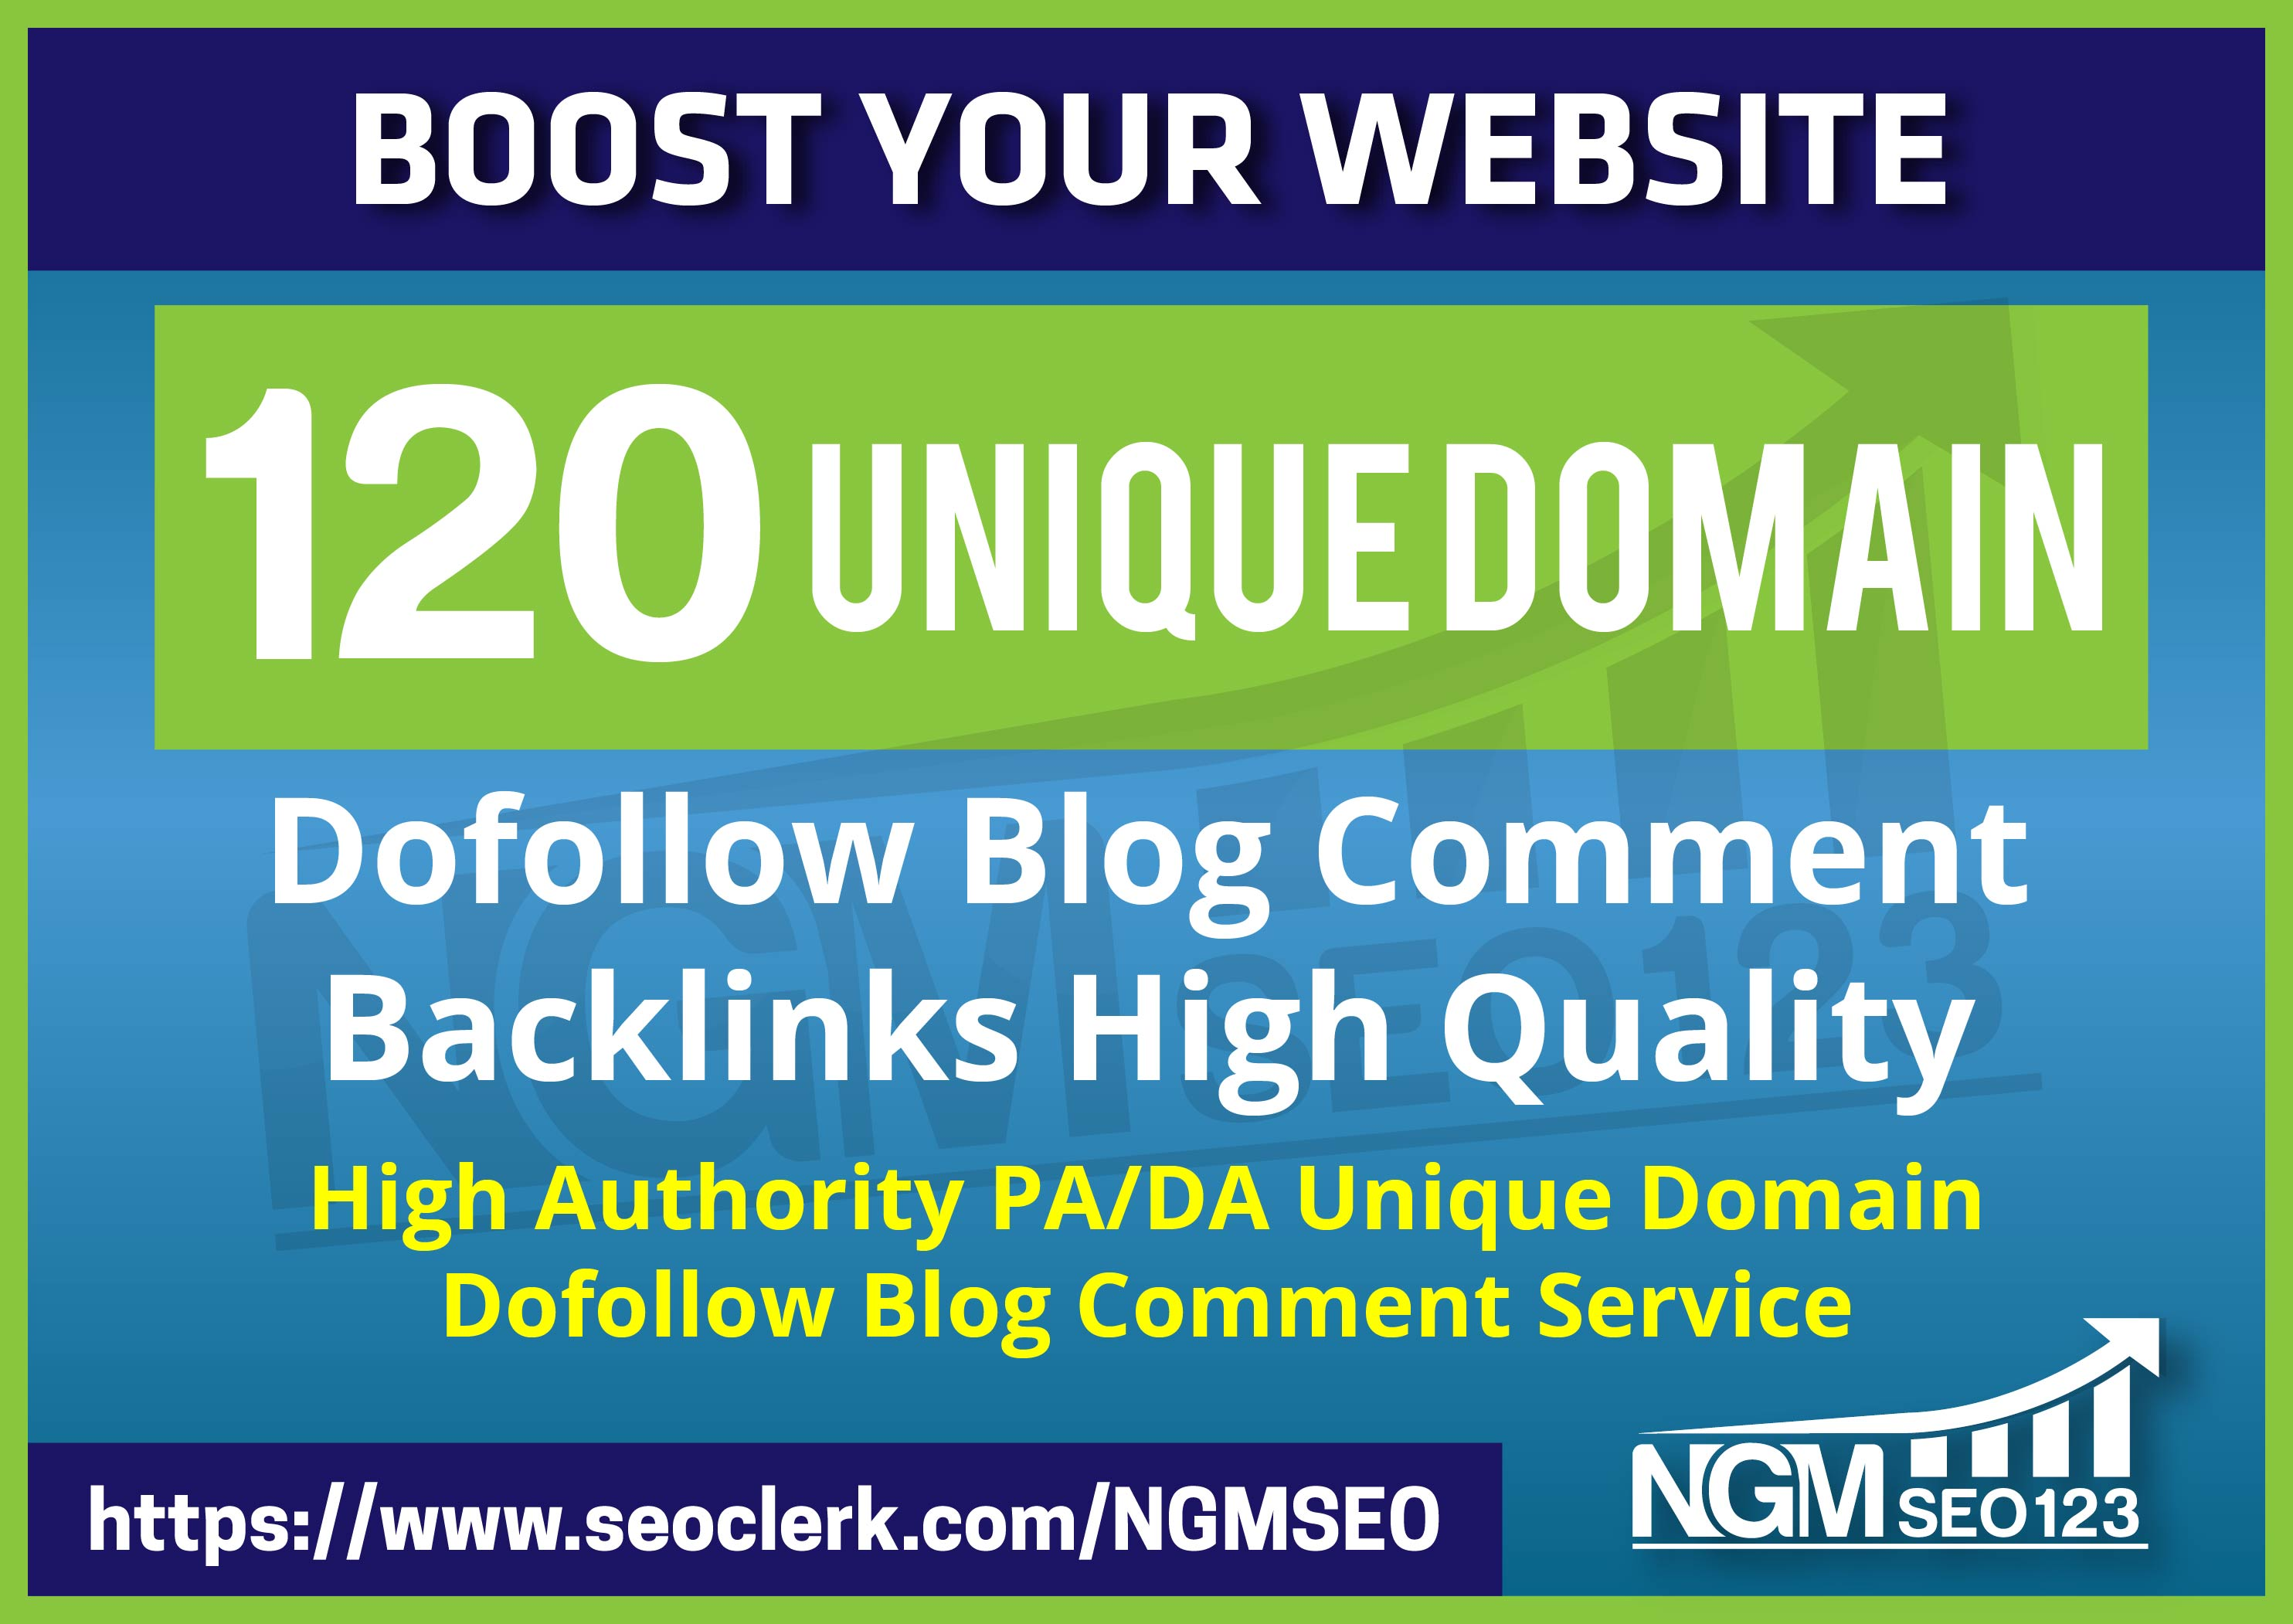 Provide 120 Unique Domain SEO Backlinks on tf100 da100 sites